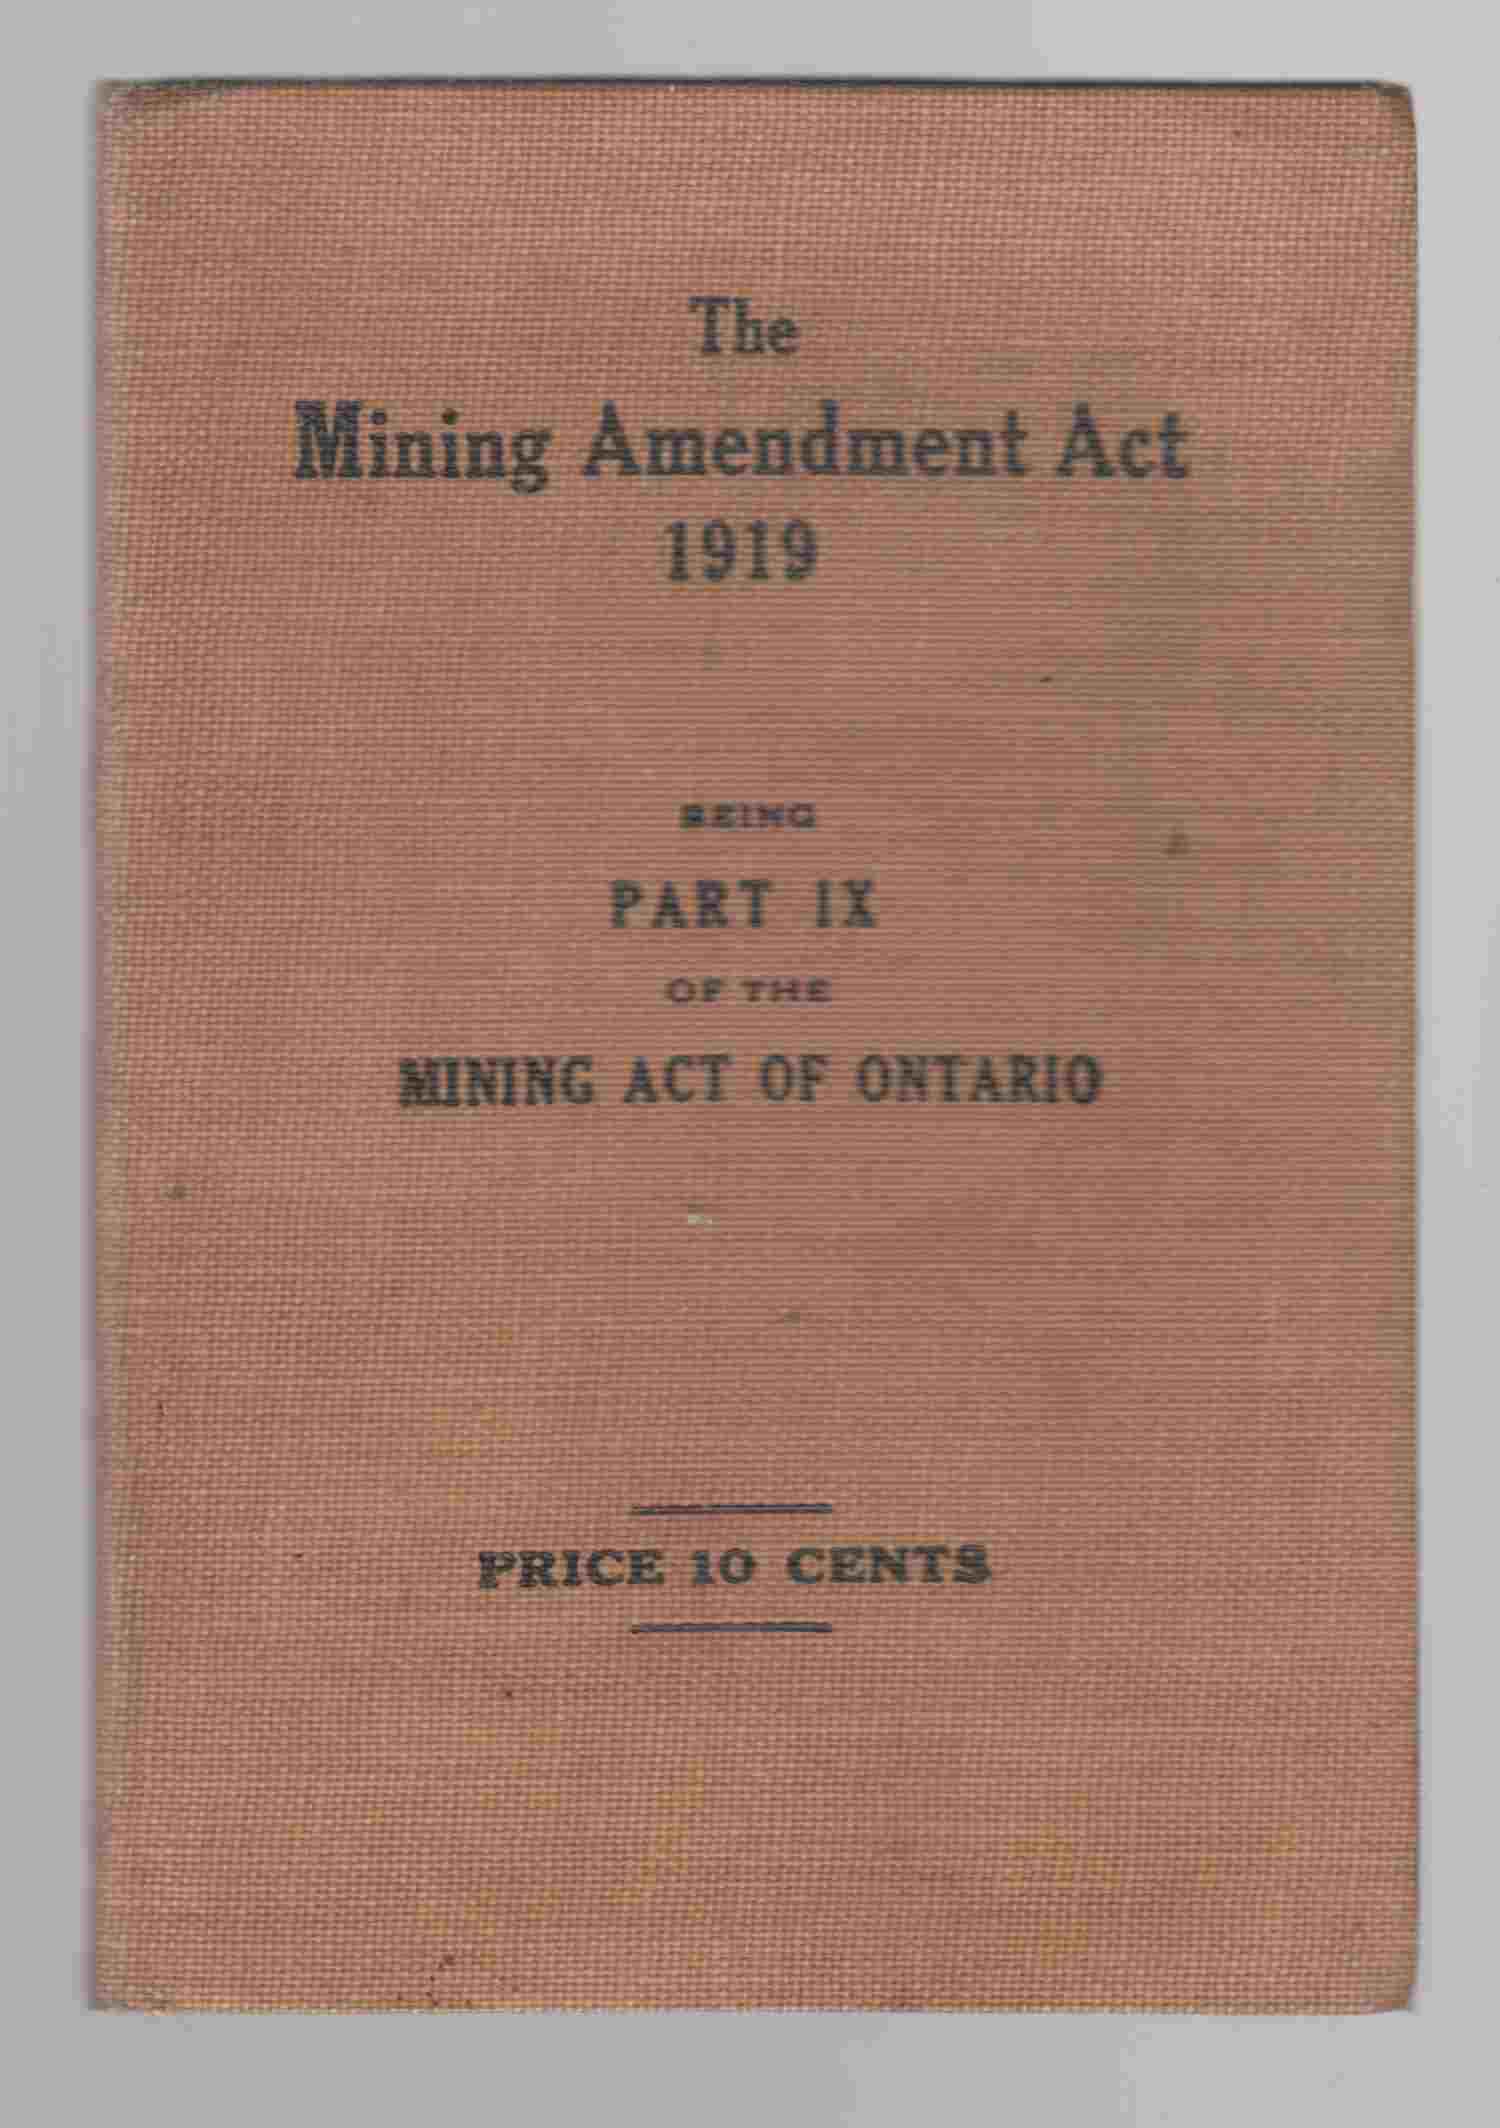 Image for The Mining Amendment Act 1919 Being Part IX of the Mining Act of Ontario